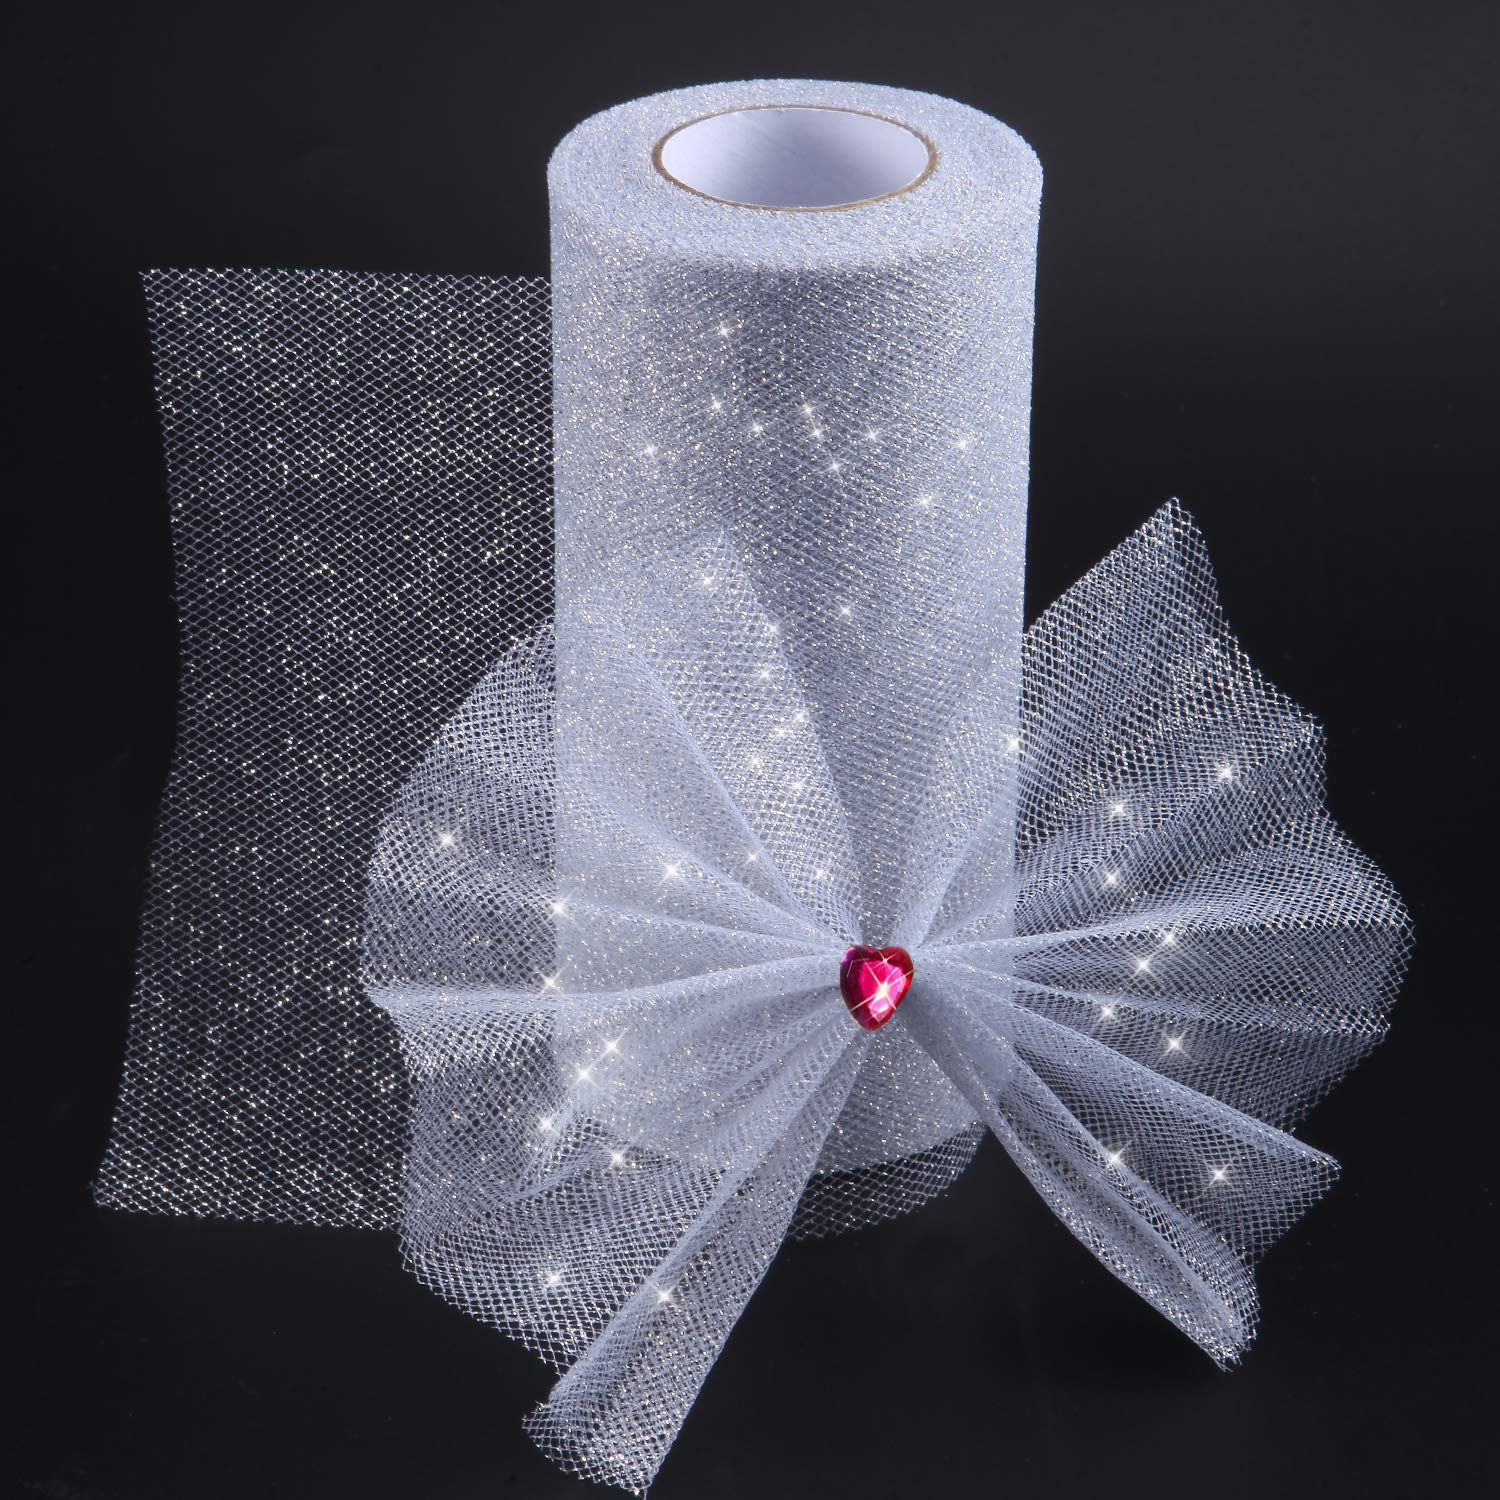 75 feet Glitter Tulle Fabric Ribbon Rolls Glitter Sparkle Tulle Spool 6 Inch by 25 Yards Black